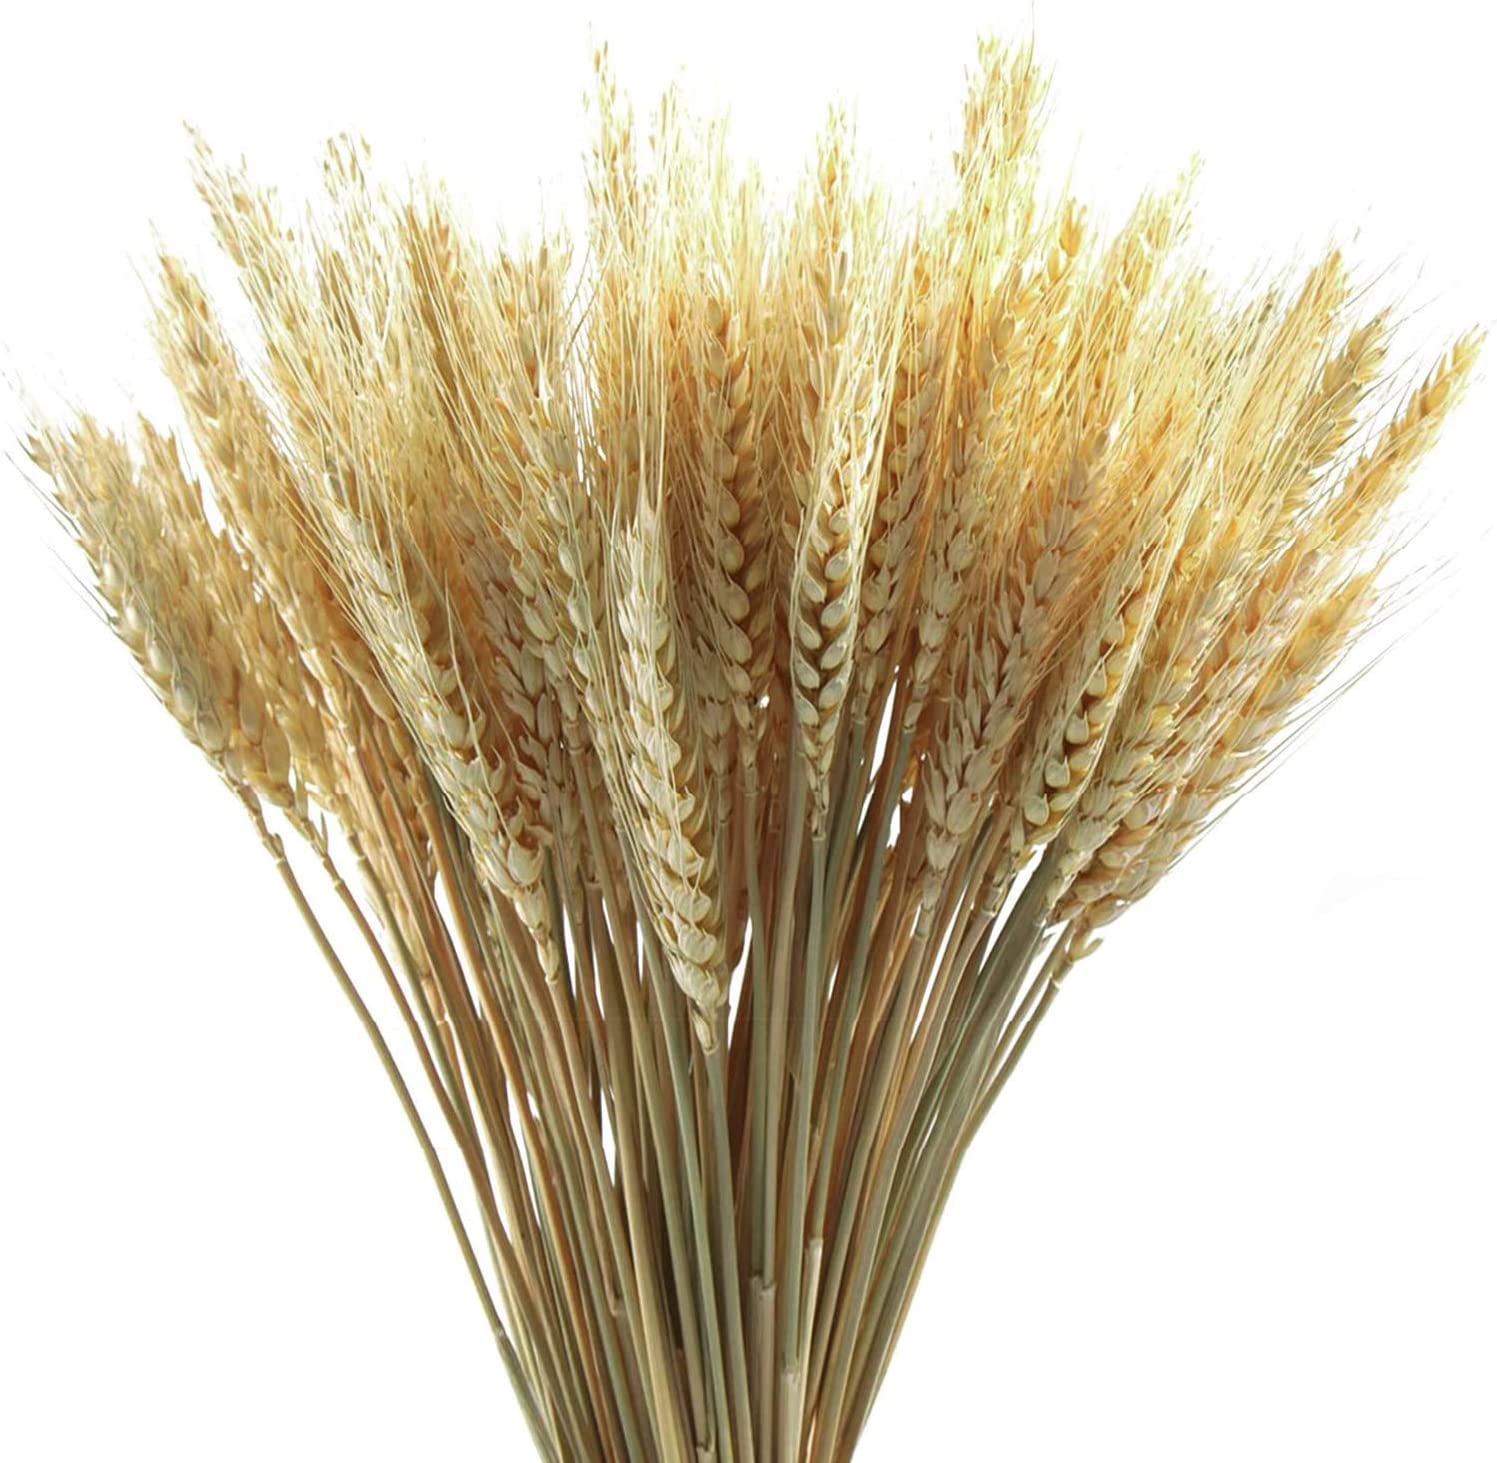 Delokey 200 Stems Dried Wheat Sheaves Stalks-Artificial Flower with Natural Ear of Wheat Grain Flowers Dry Grass Bunch DIY Arrangements for Home Wedding Store Decorative (Natural)